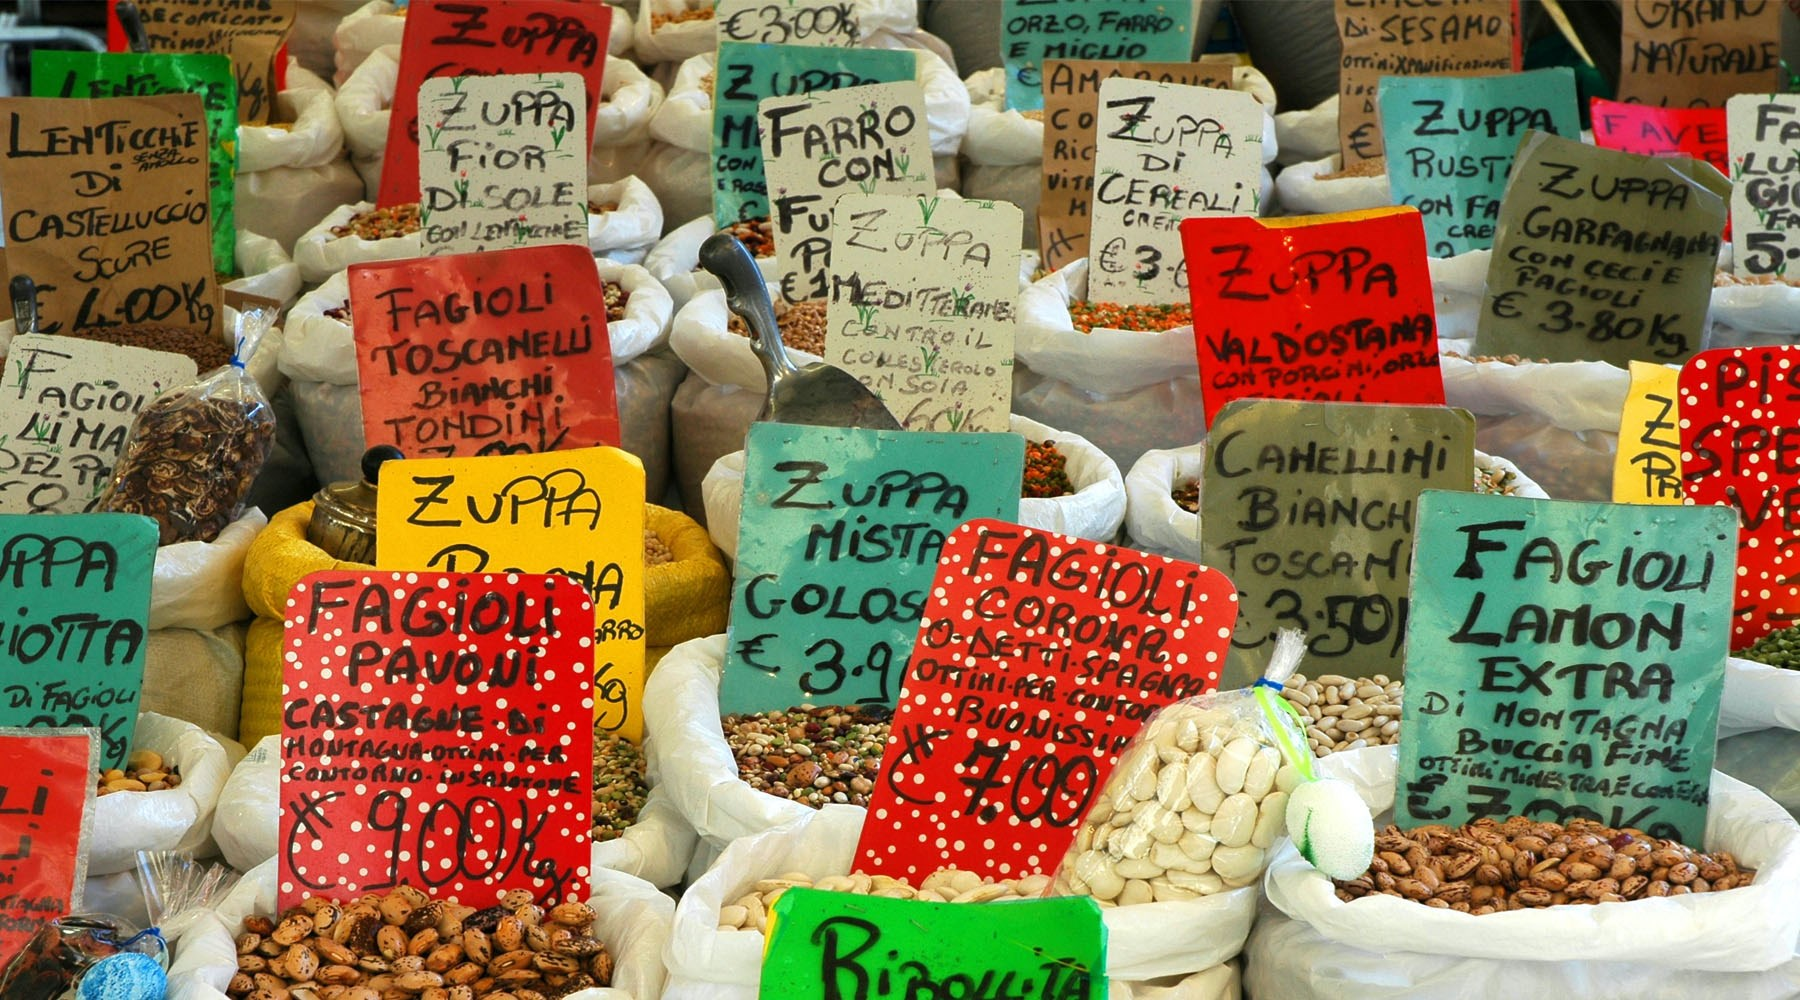 Market stall of beans for sale